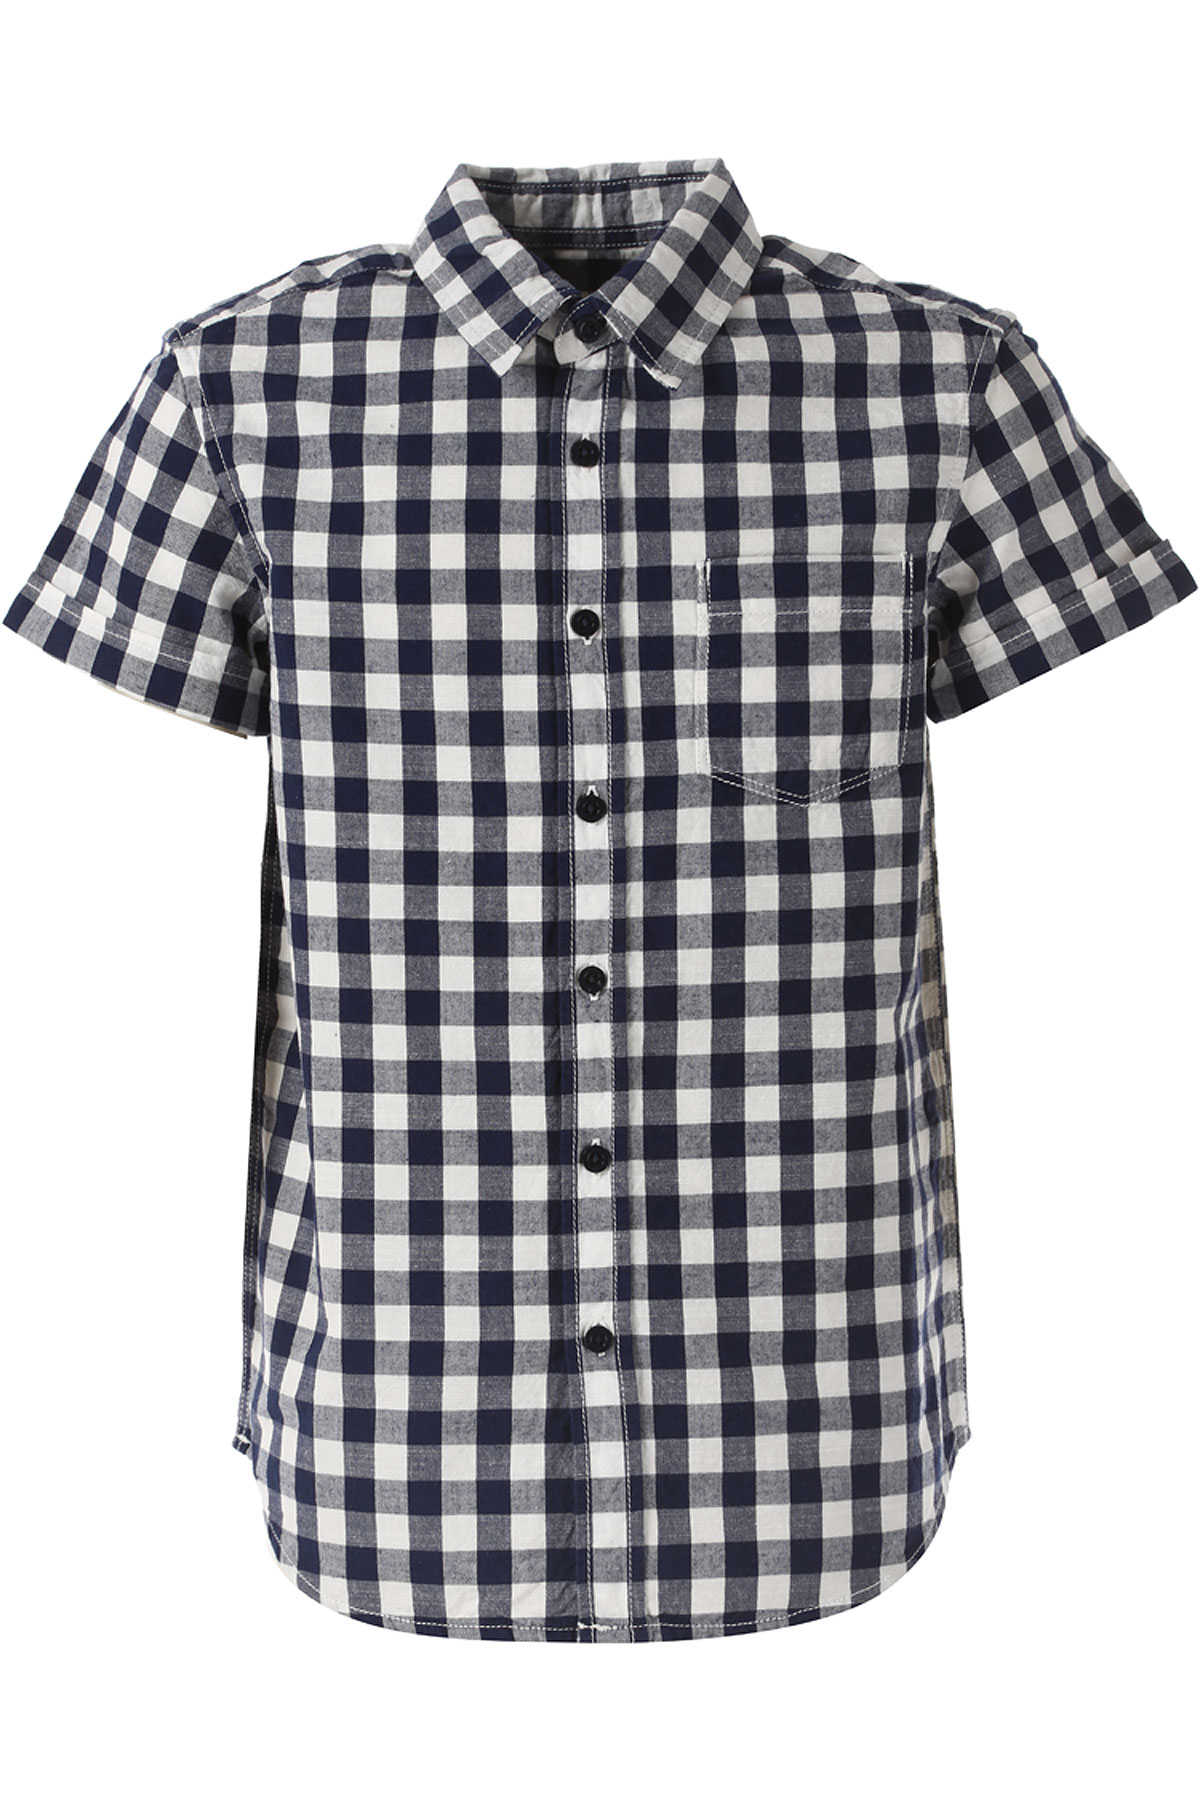 Woolrich Kids Shirts for Boys On Sale in Outlet navy SE - GOOFASH